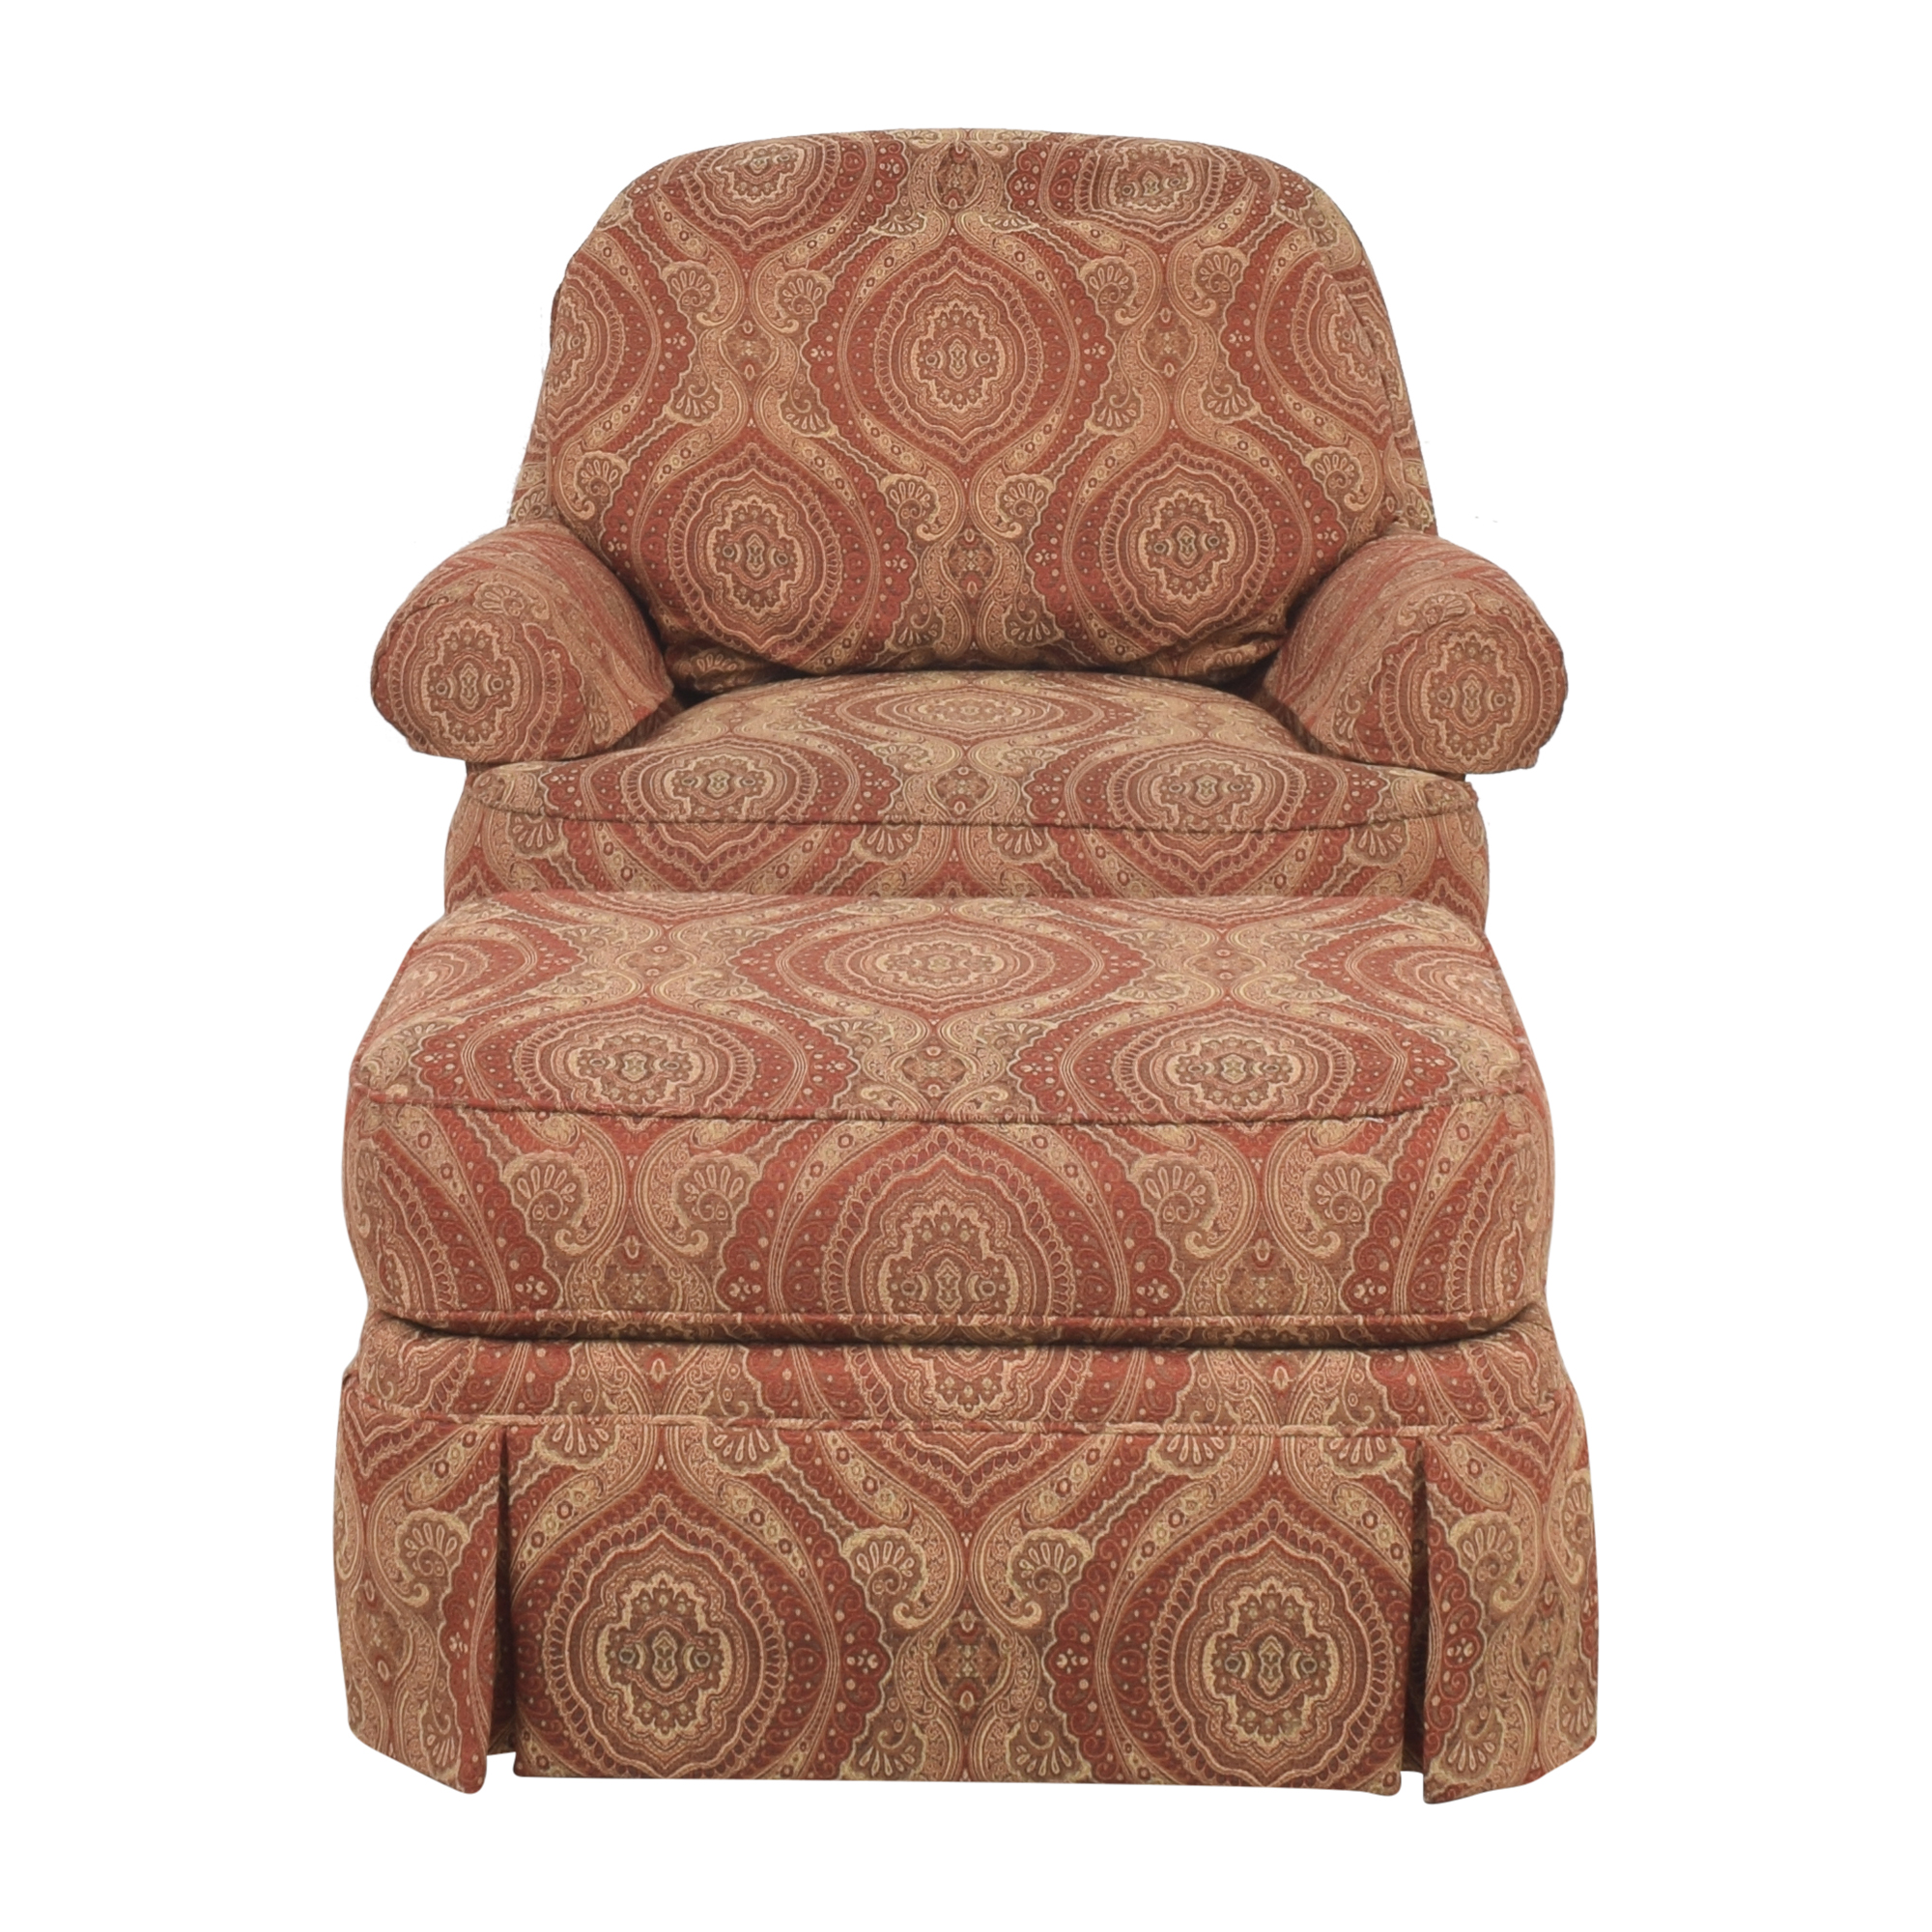 Ethan Allen Ethan Allen Swivel Chair with Ottoman dimensions